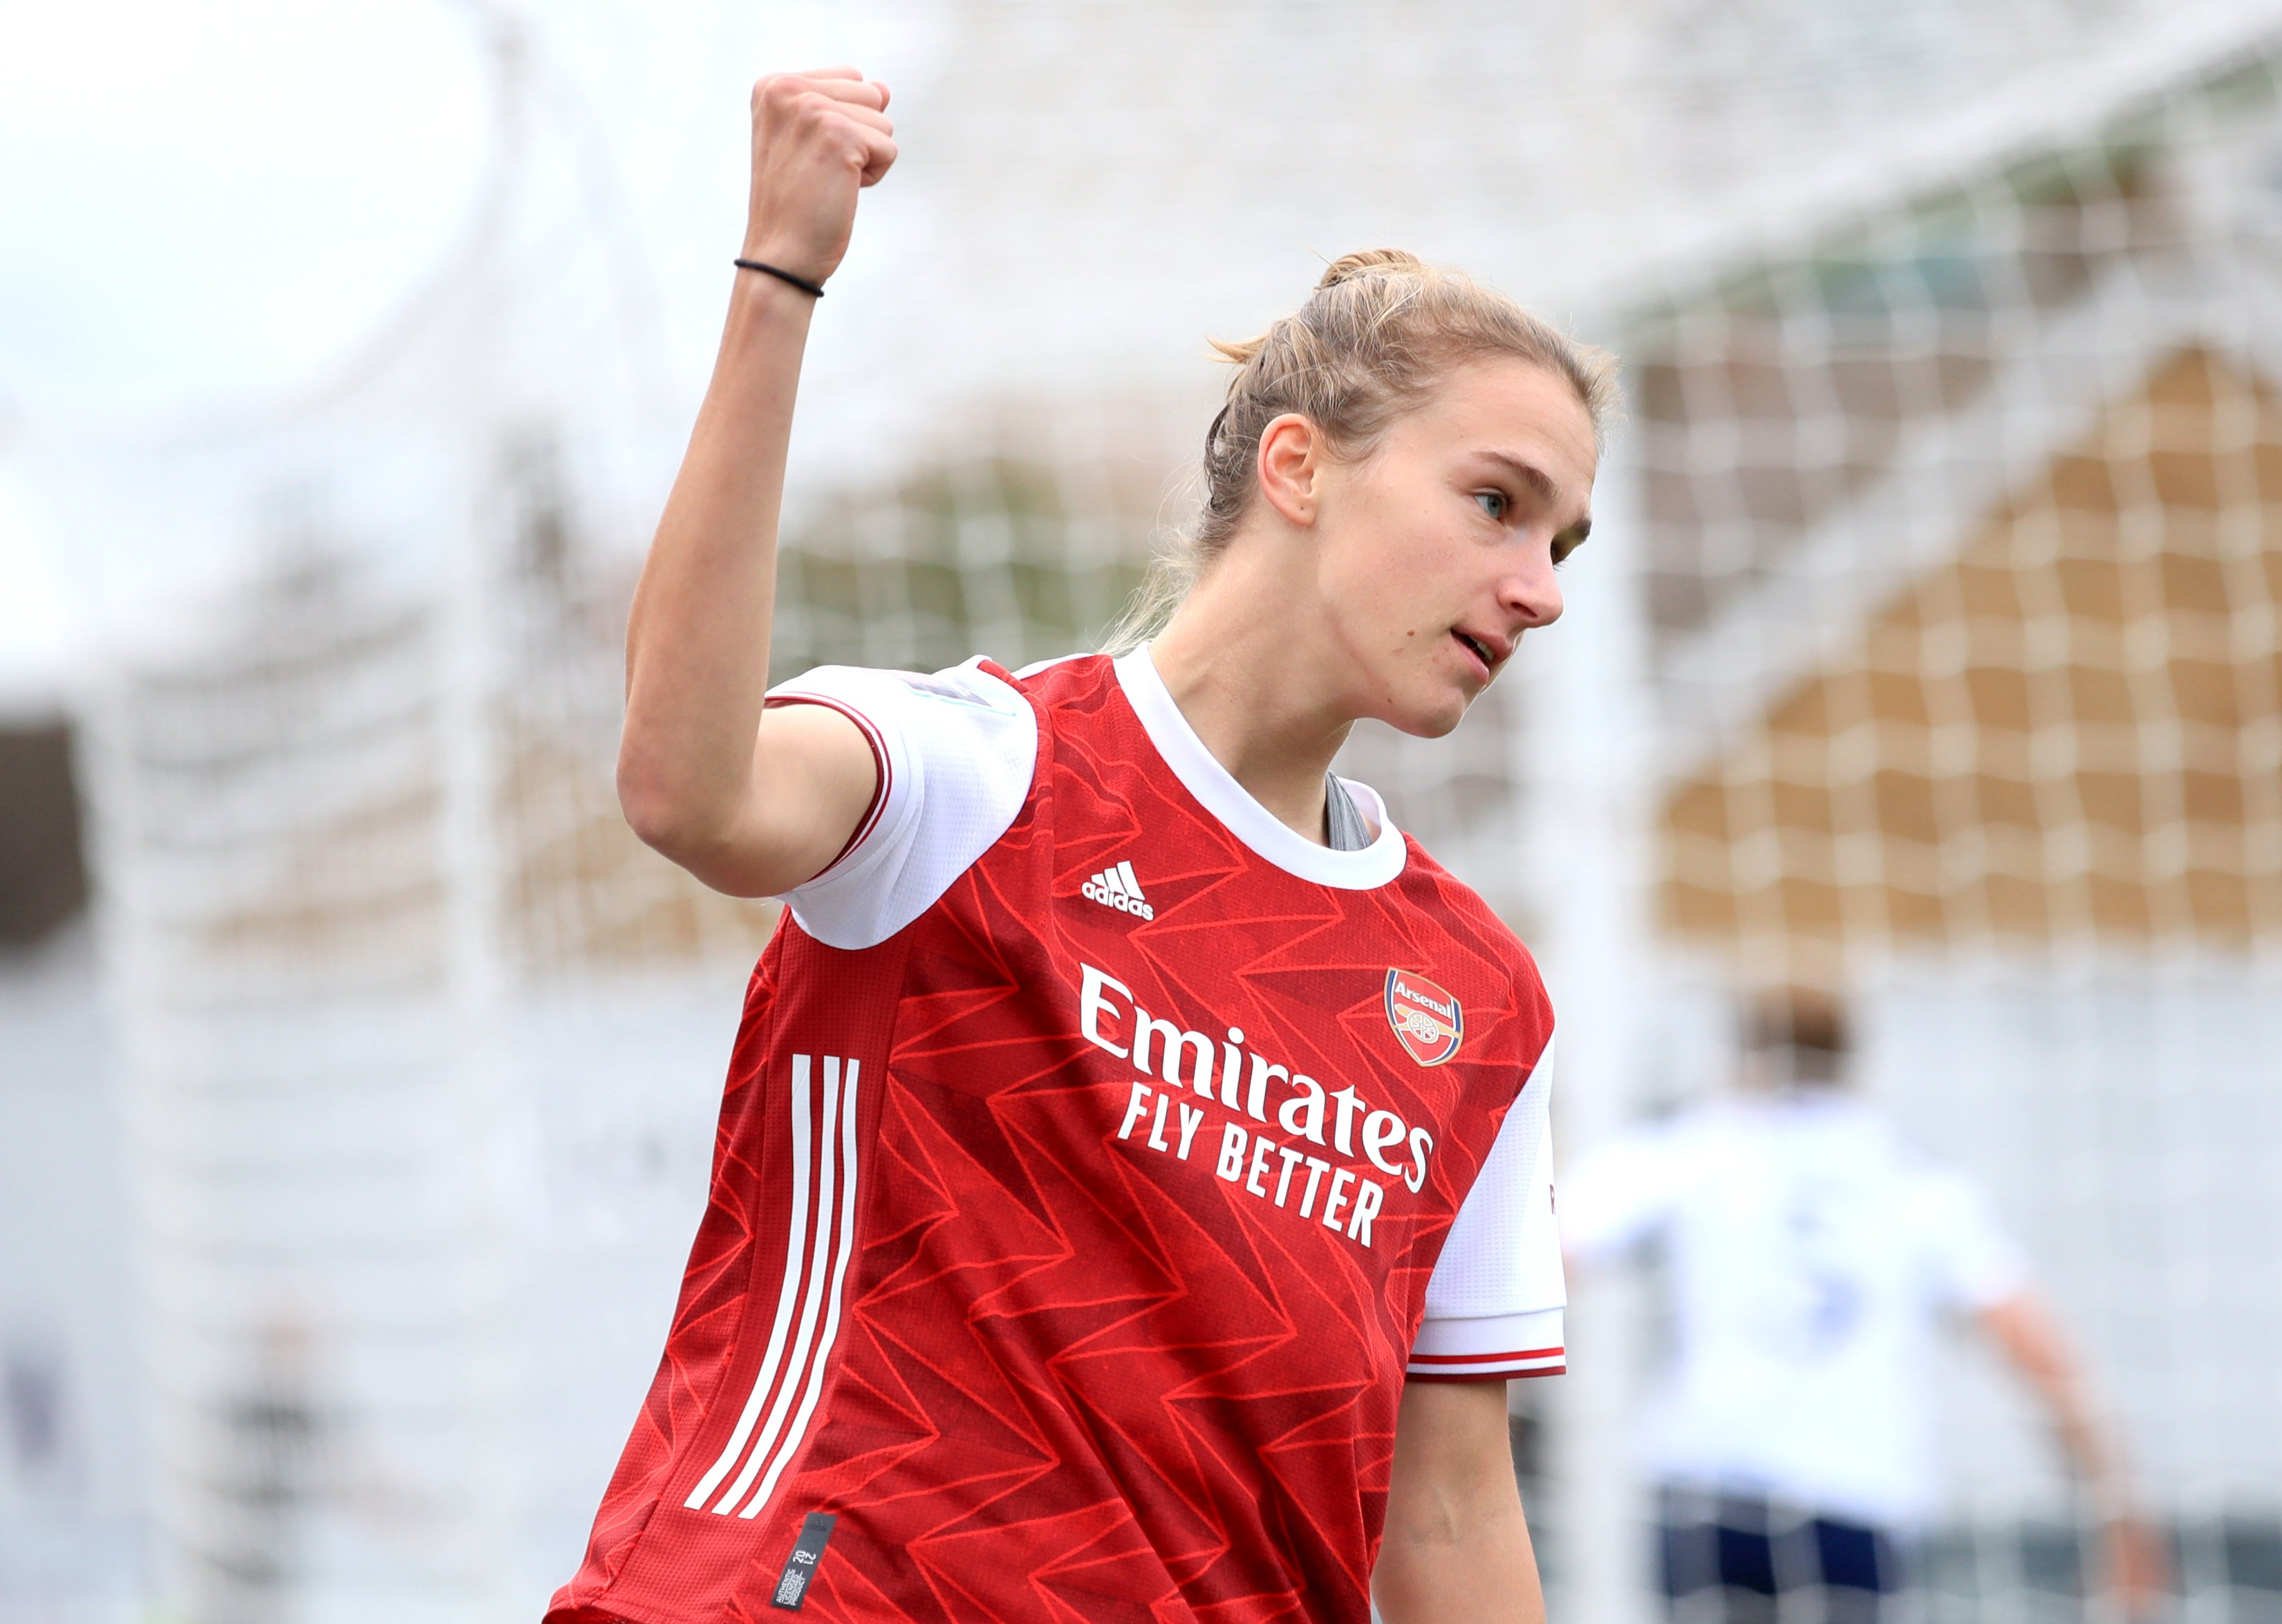 Arsenal striker Vivianne Miedema is best player in world, says Kelly Smith